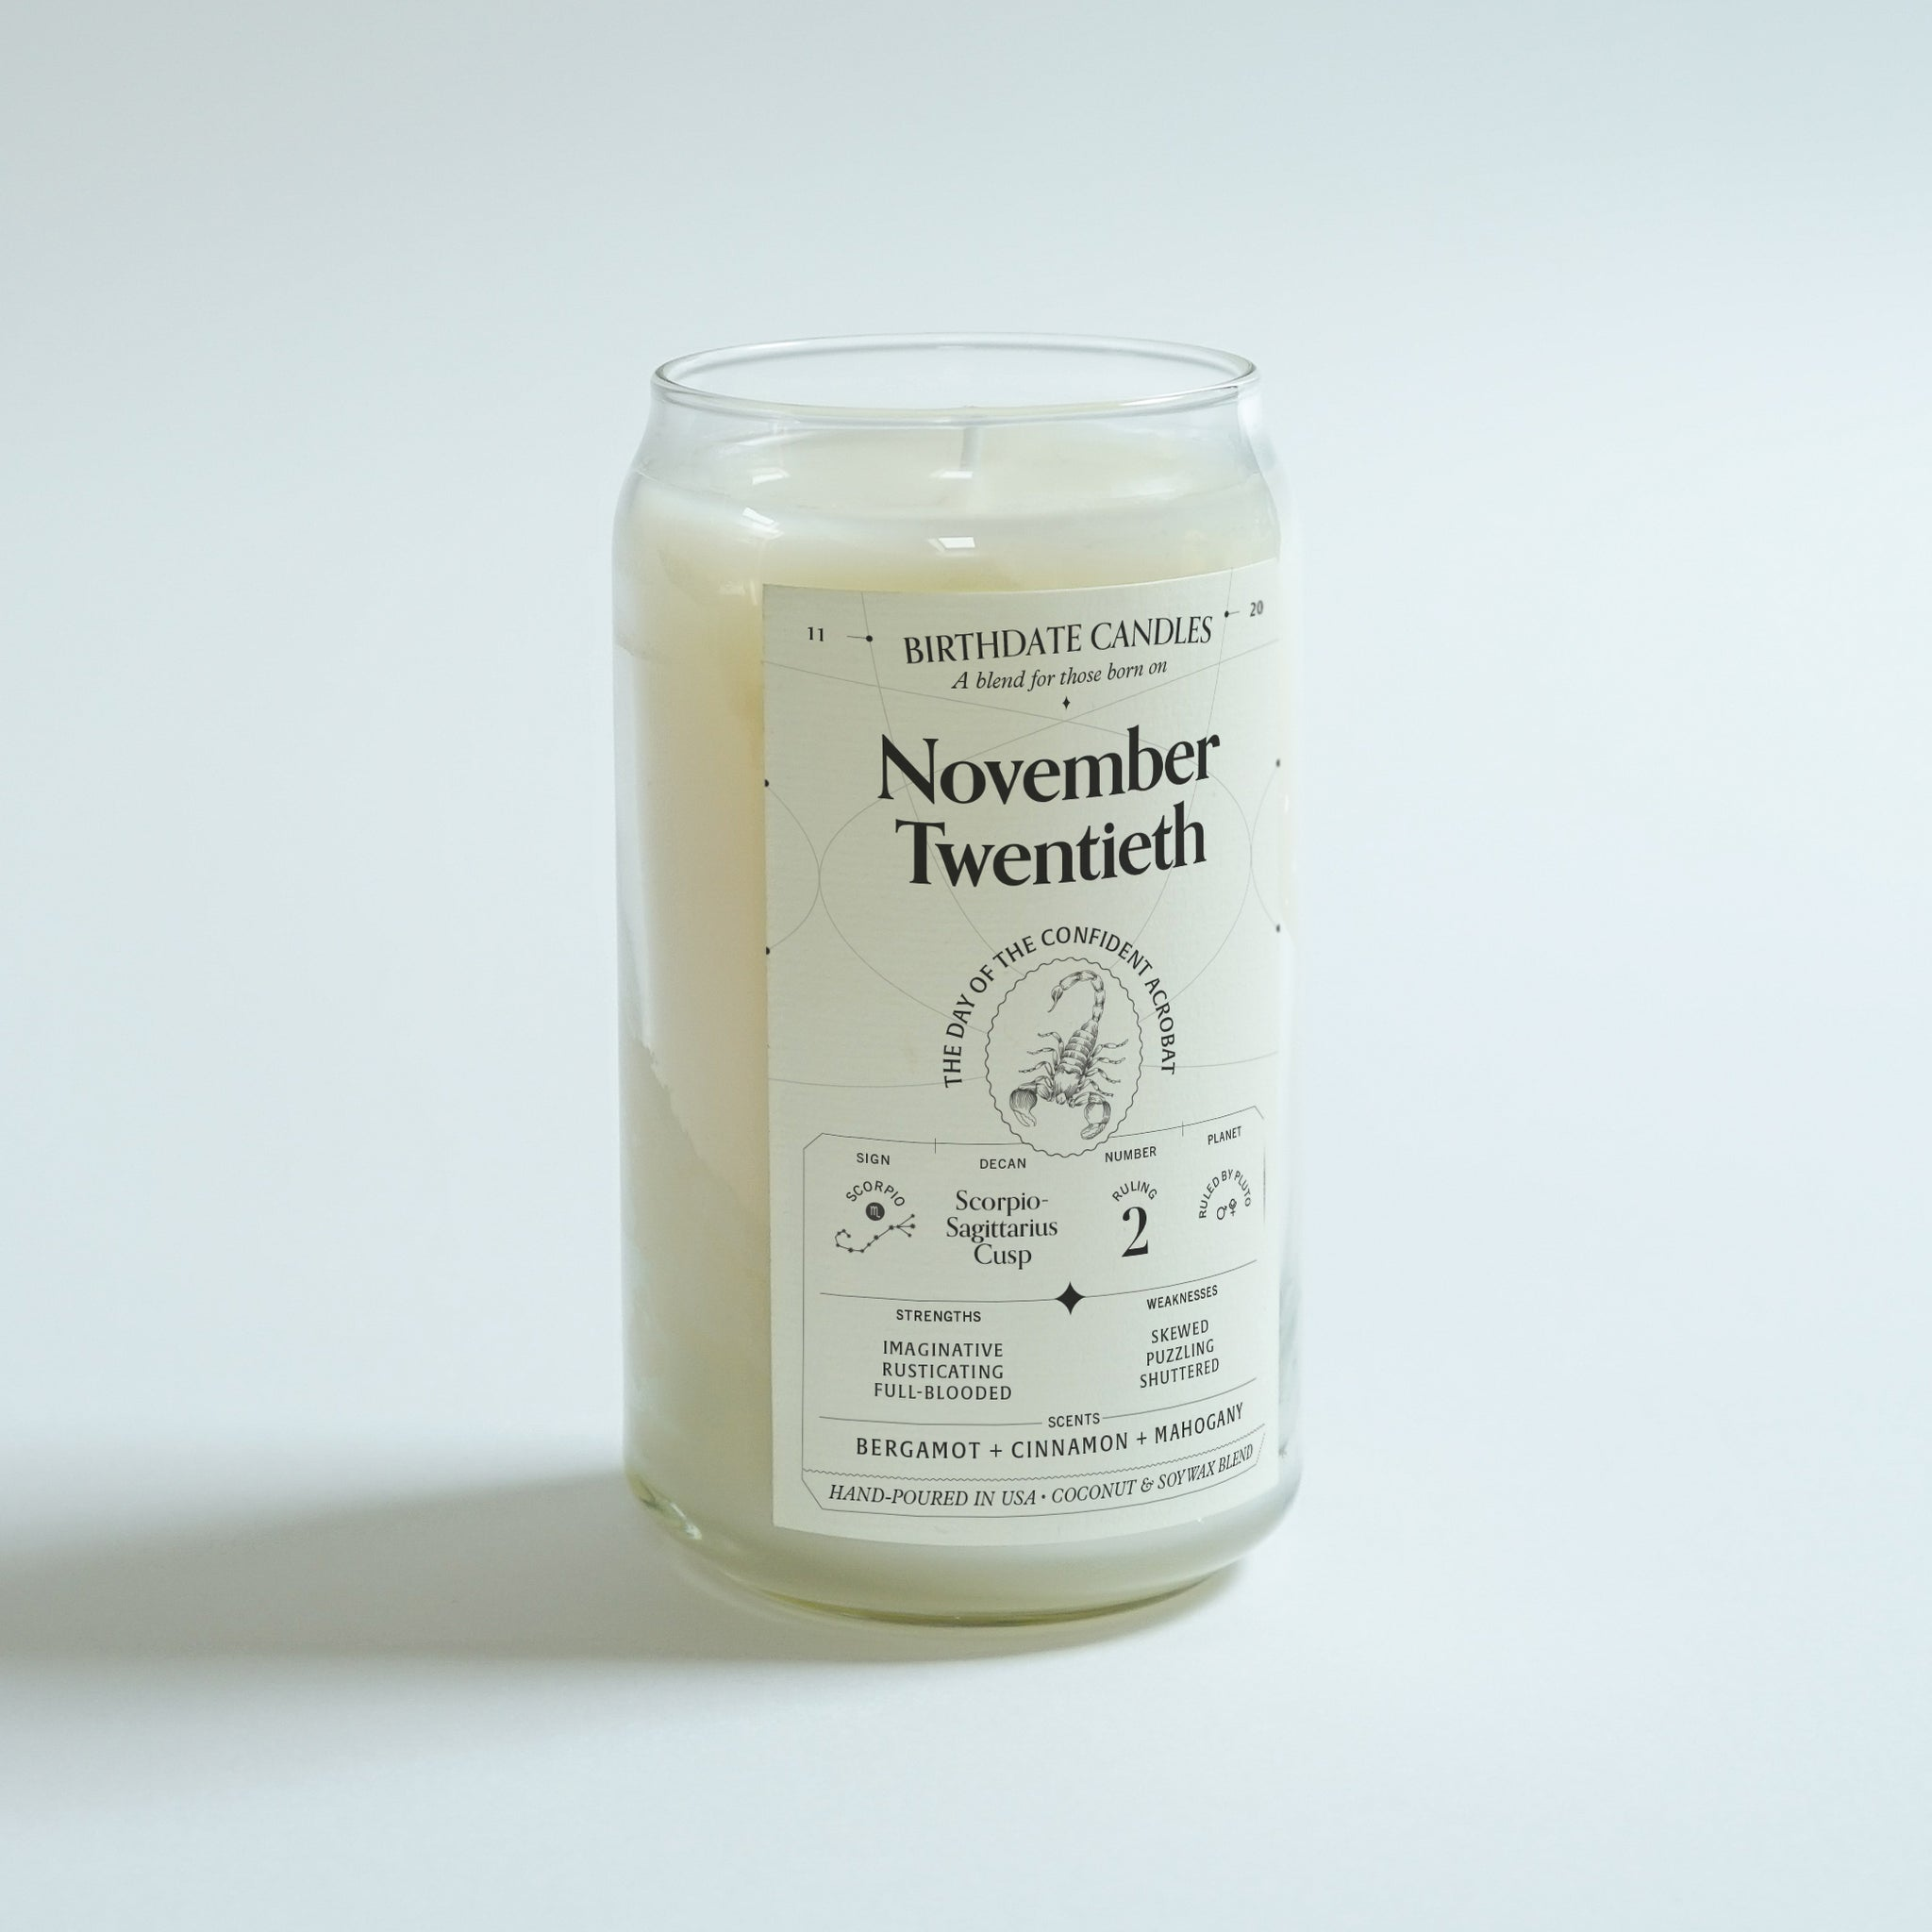 The November Twentieth Birthday Candle